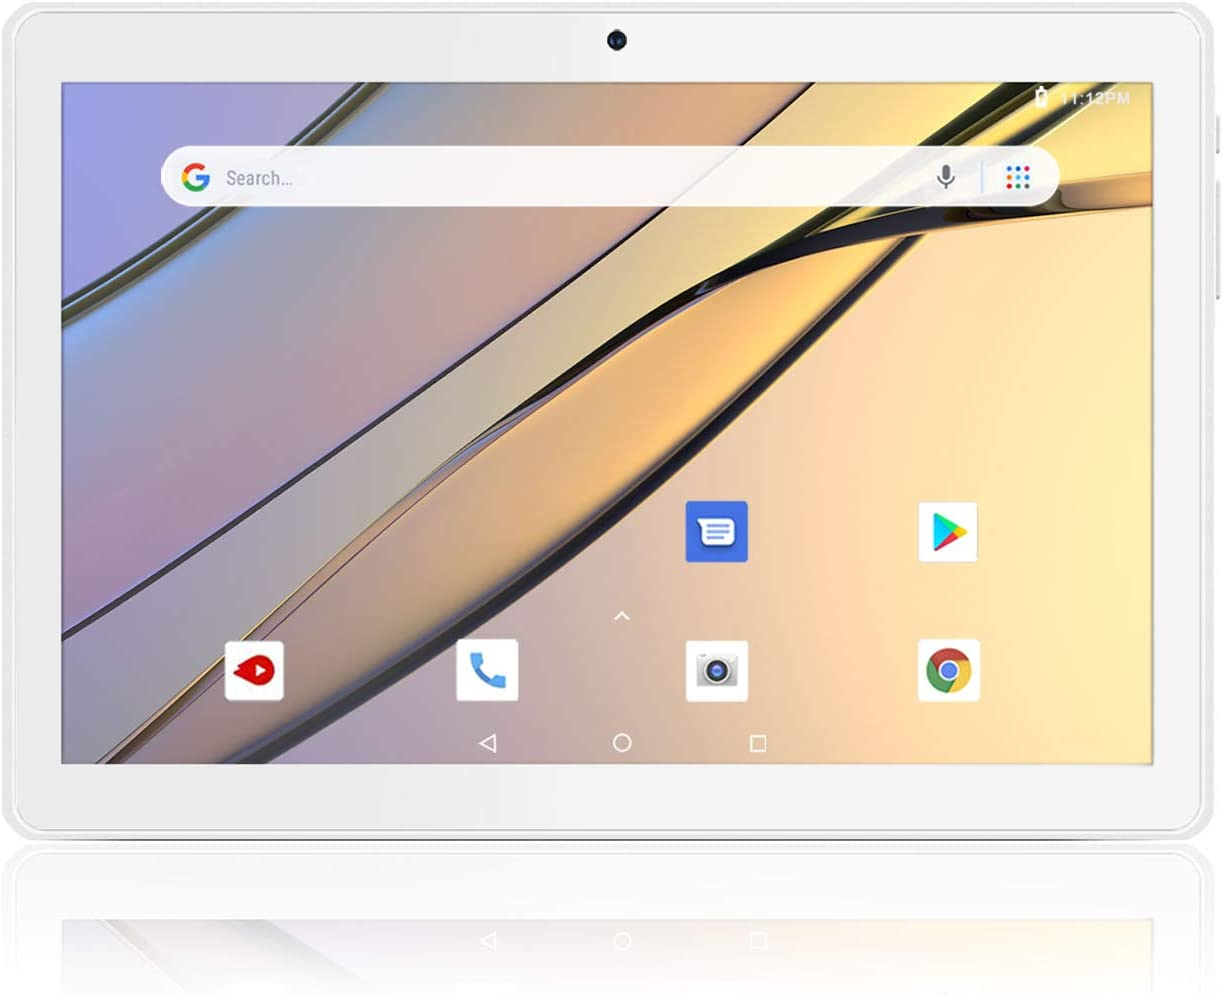 Android Tablet 10 Inch, 5G WiFi Tablet, 16 GB Storage, GMS Certified, Android 8.1 Go, Dual Camera, Bluetooth, GPS, OTG - Silver